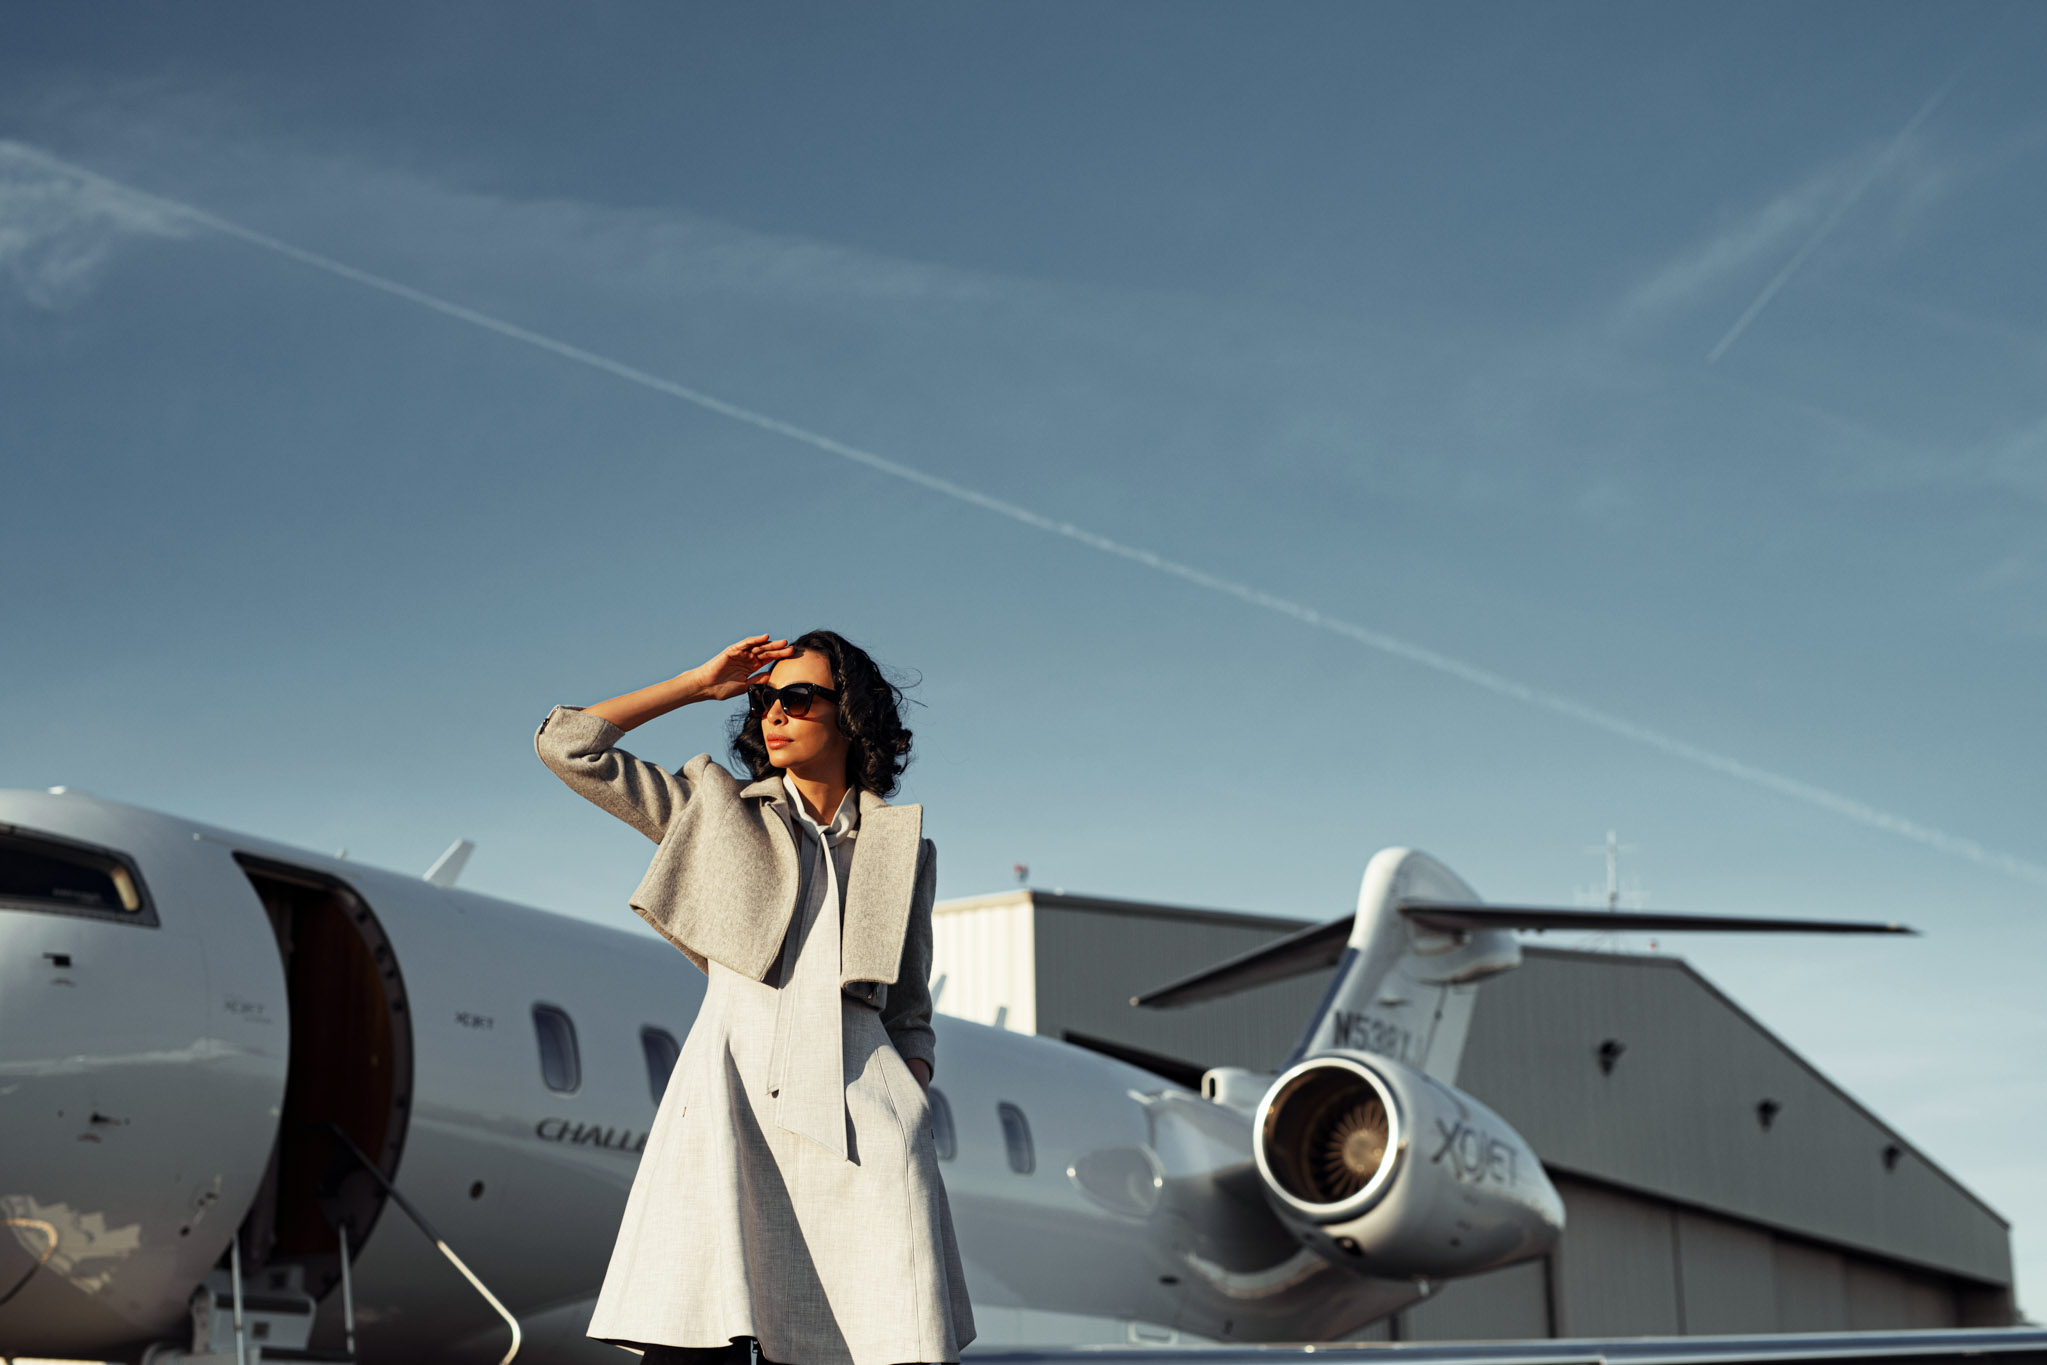 Private jet advertisement photoshoot with model